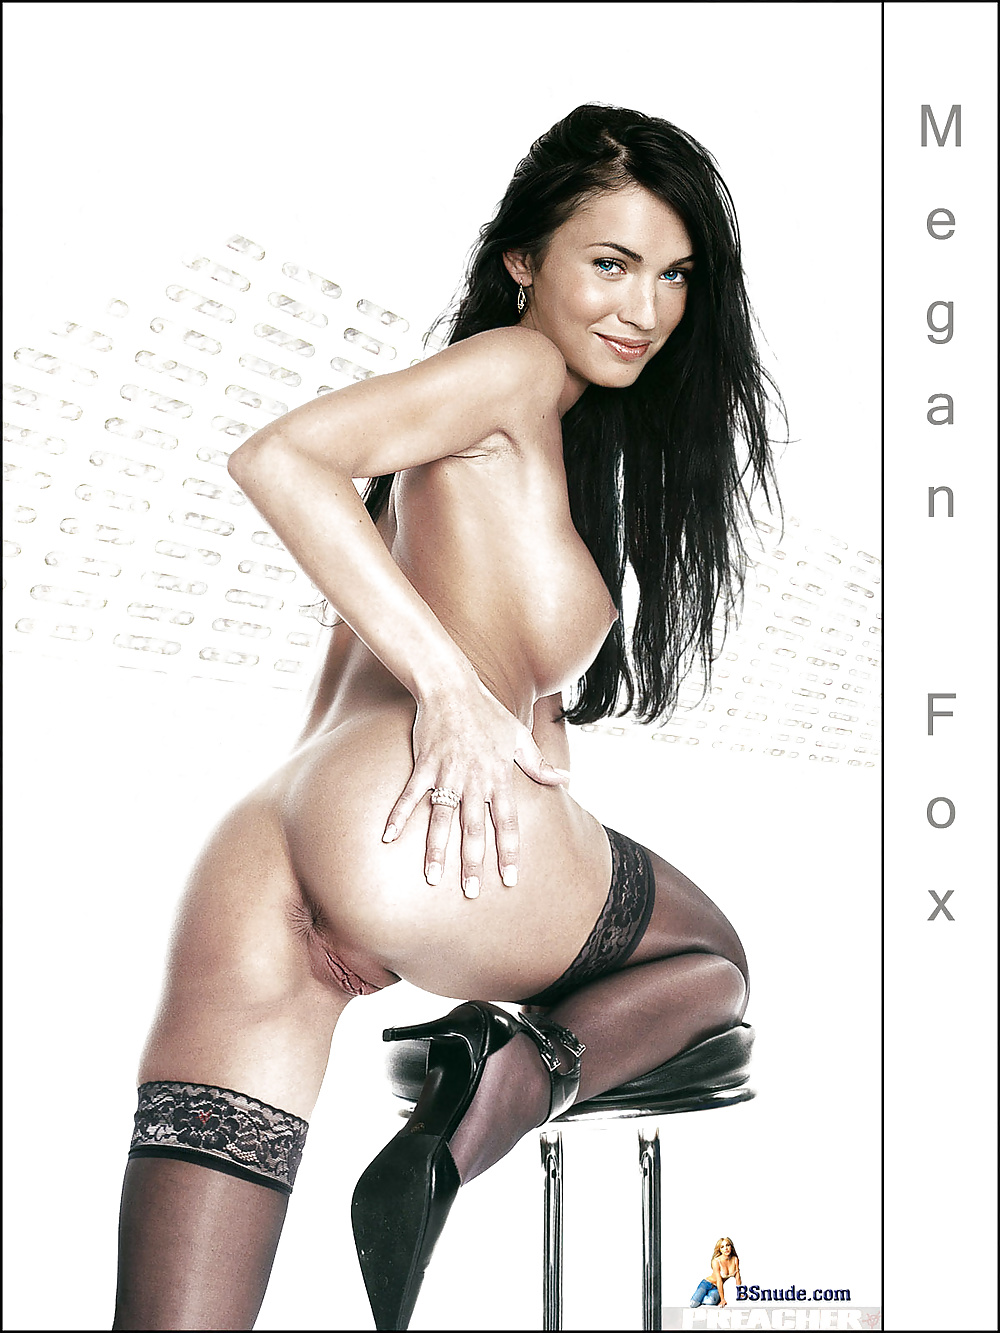 Naked pictures of megan fox-4722